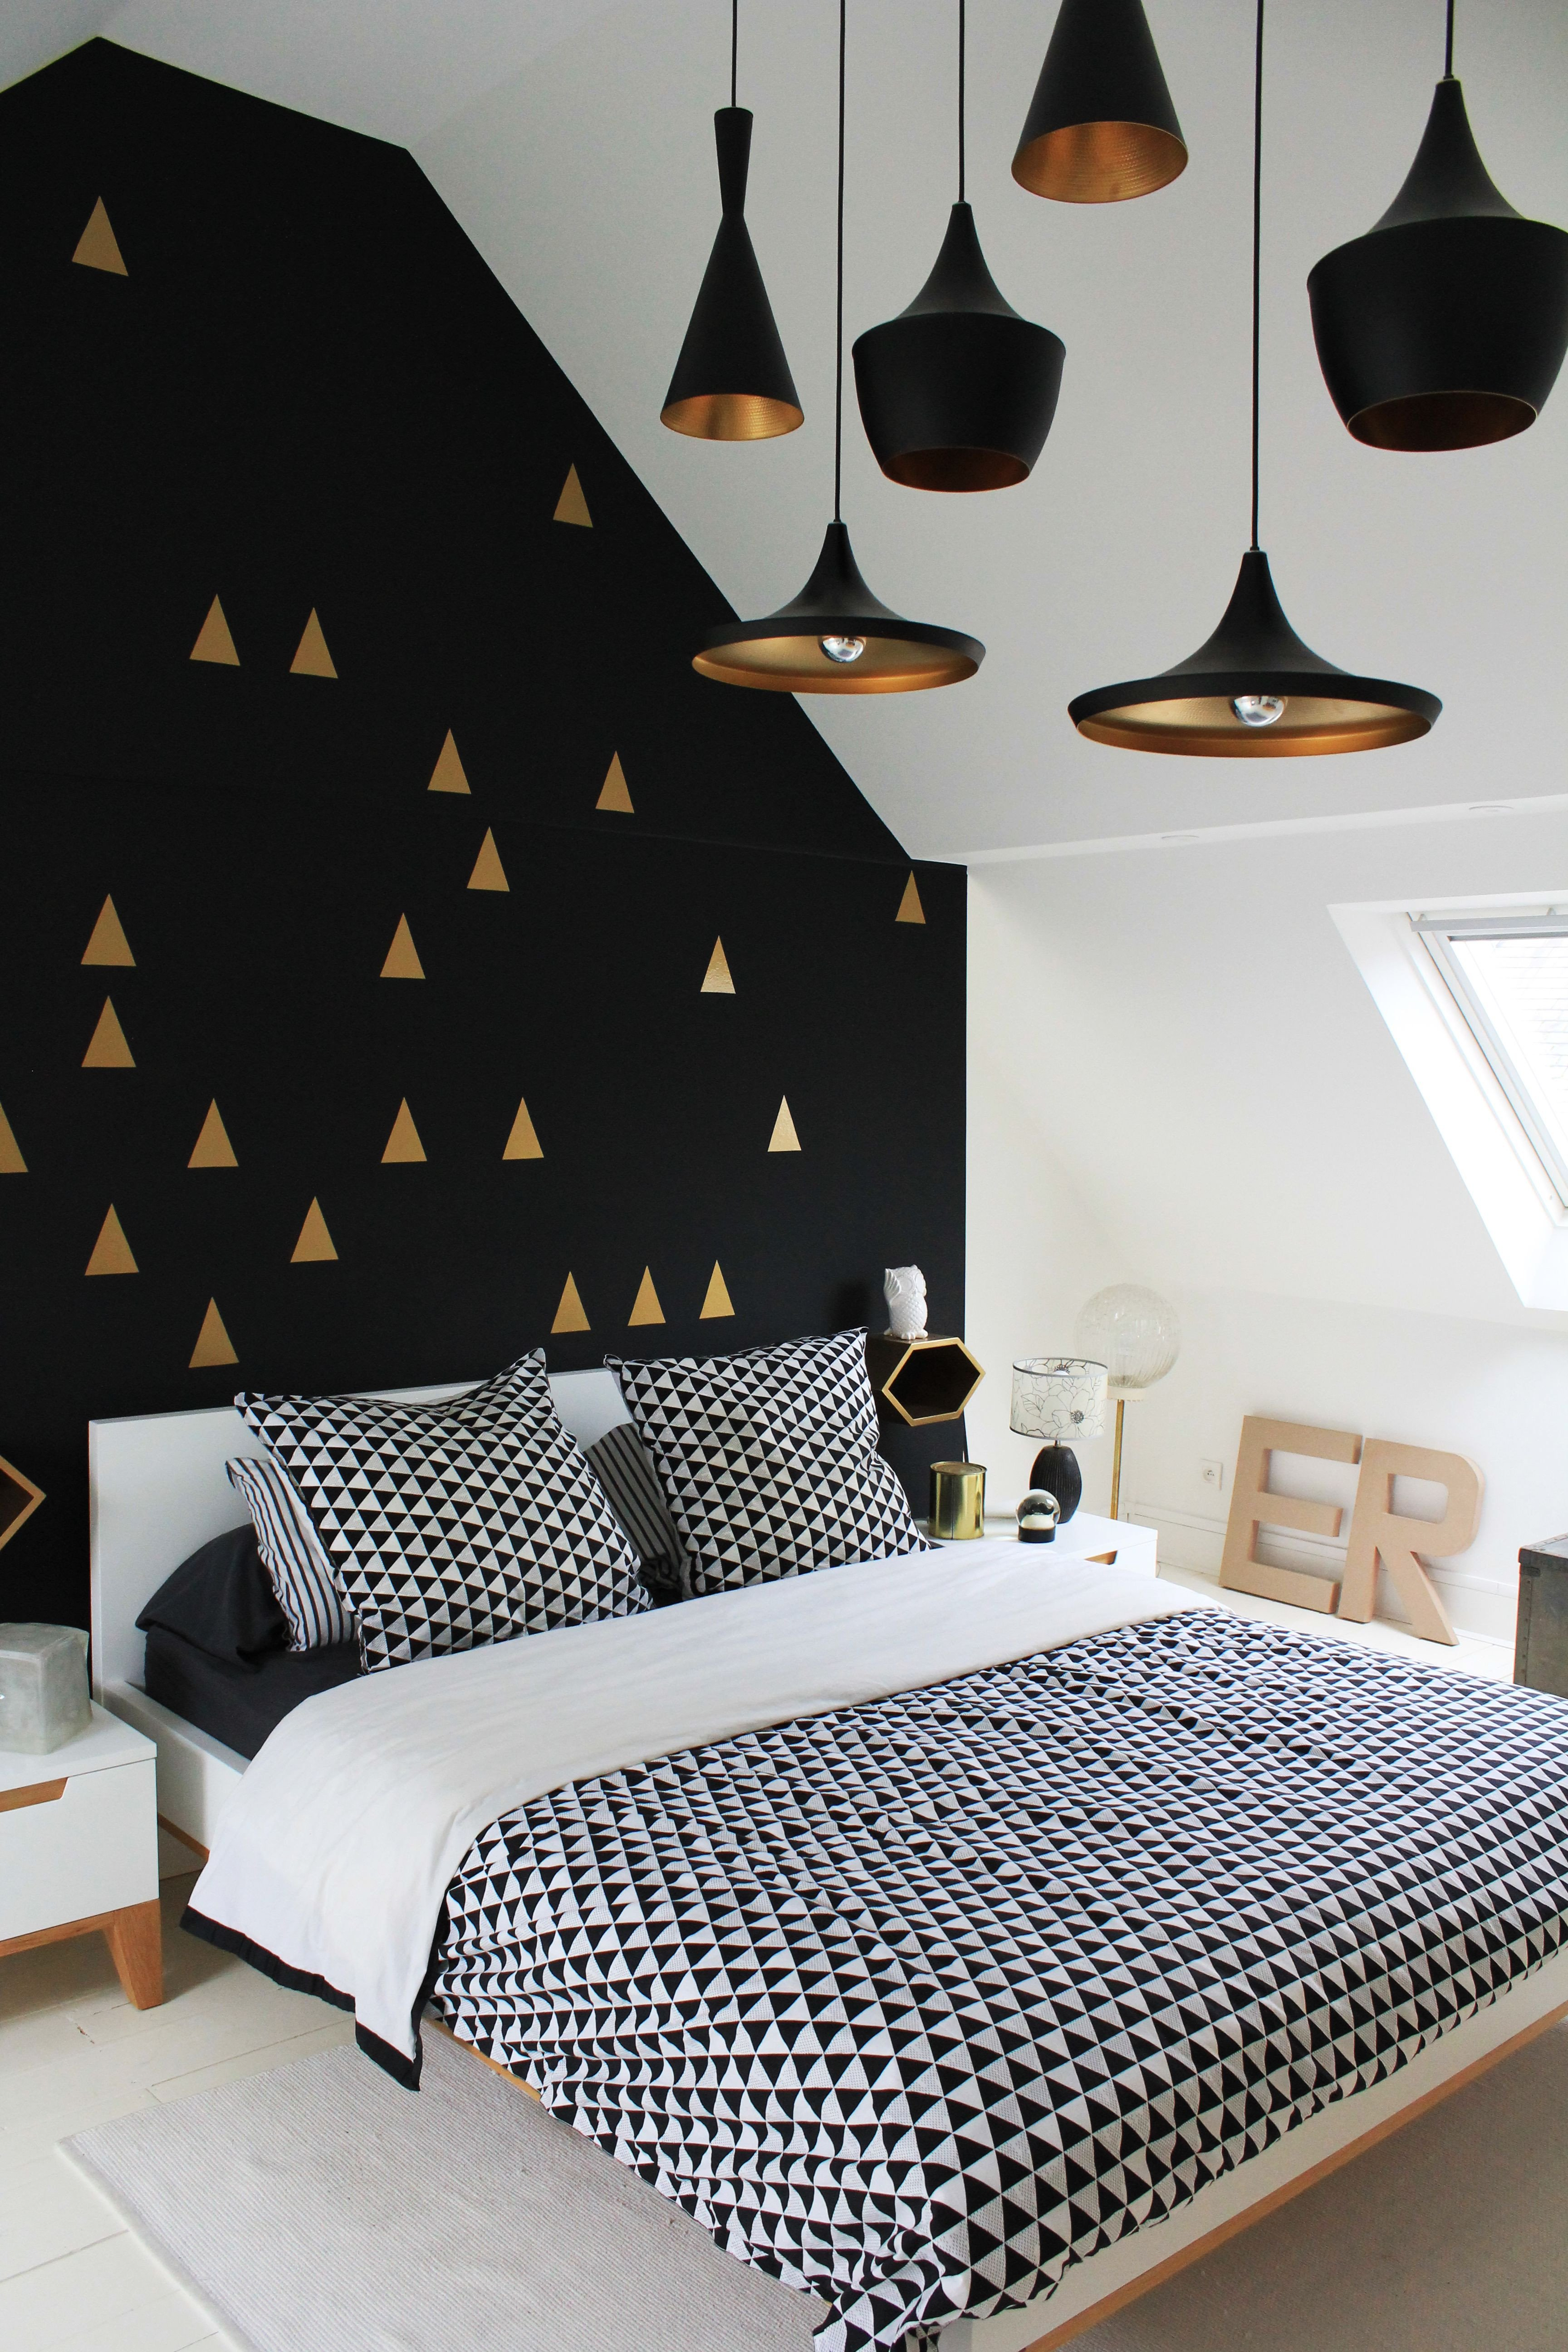 Gold Black and White Bedroom Elegant Bedroom White Gold and Black Interior Love the Wall and